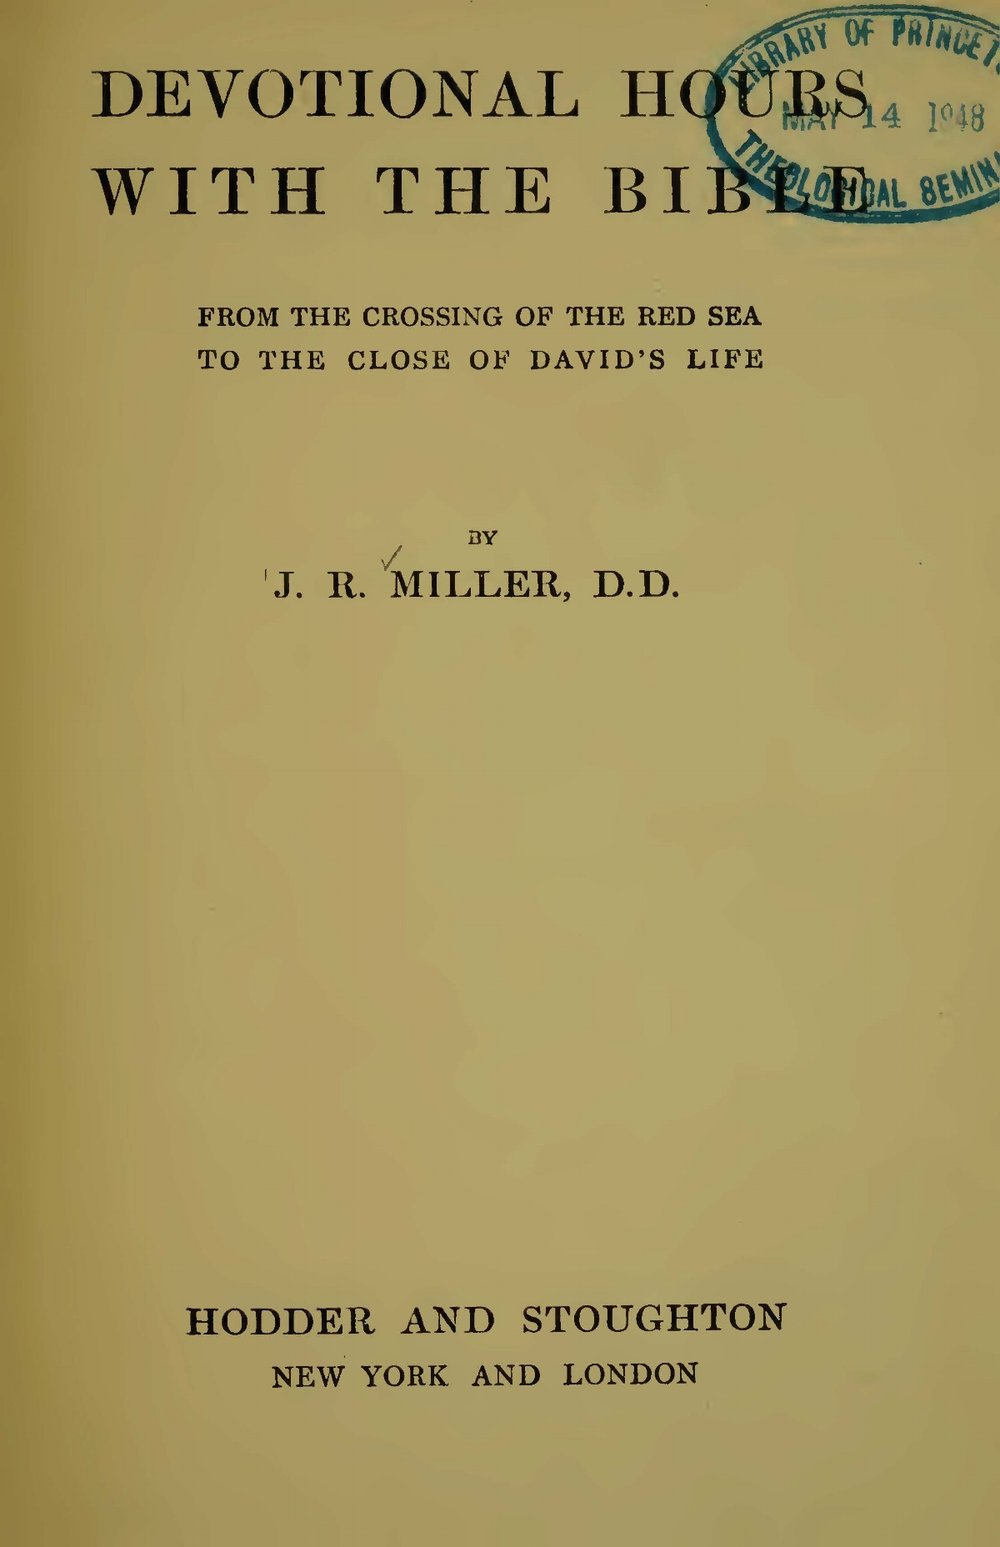 Miller, James Russell, Devotional Hours With the Bible, Vol. 2 Title Page.jpg